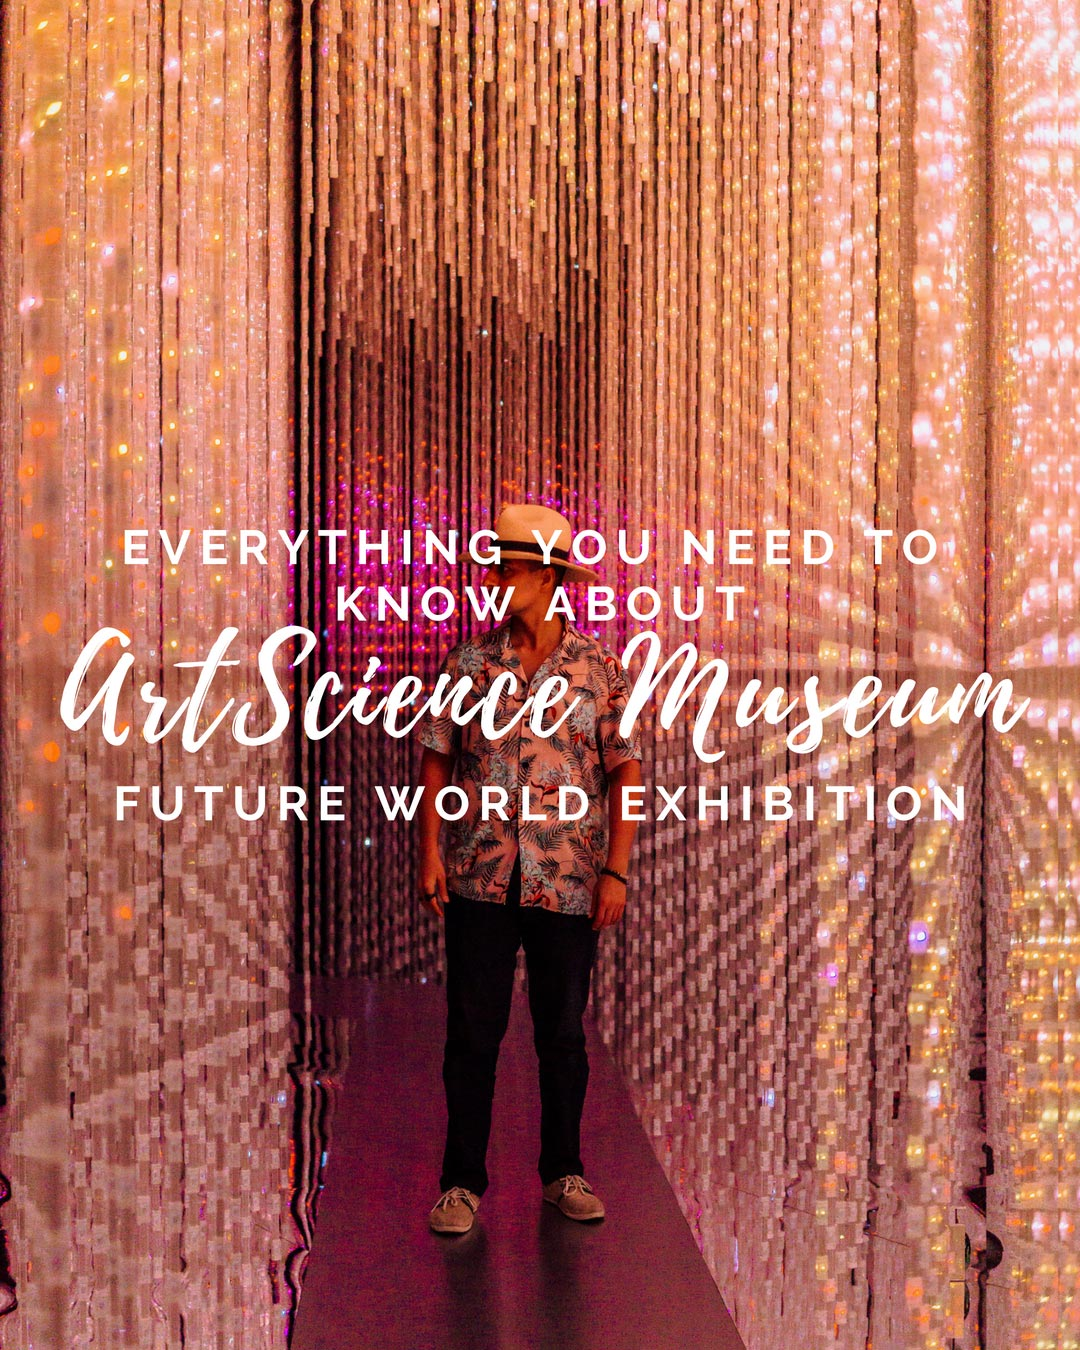 ArtScience Museum + Future World Exhibition